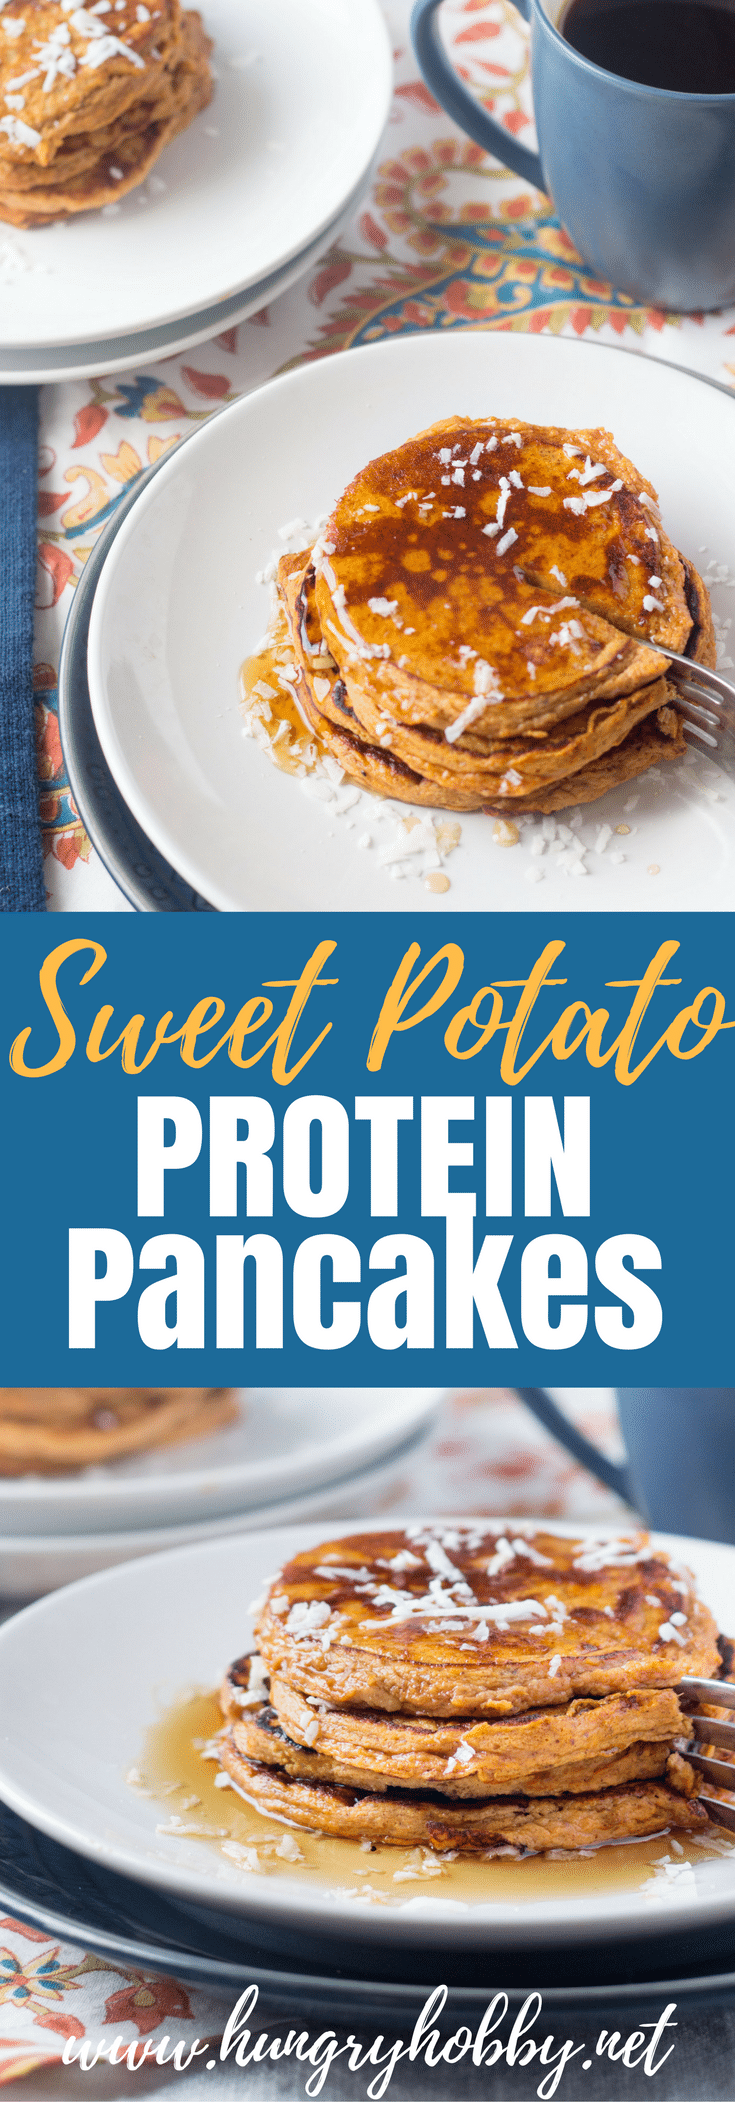 For all the sweet potato lovers out there these Sweet Potato Protein Pancakes are AMAZING and gluten free!